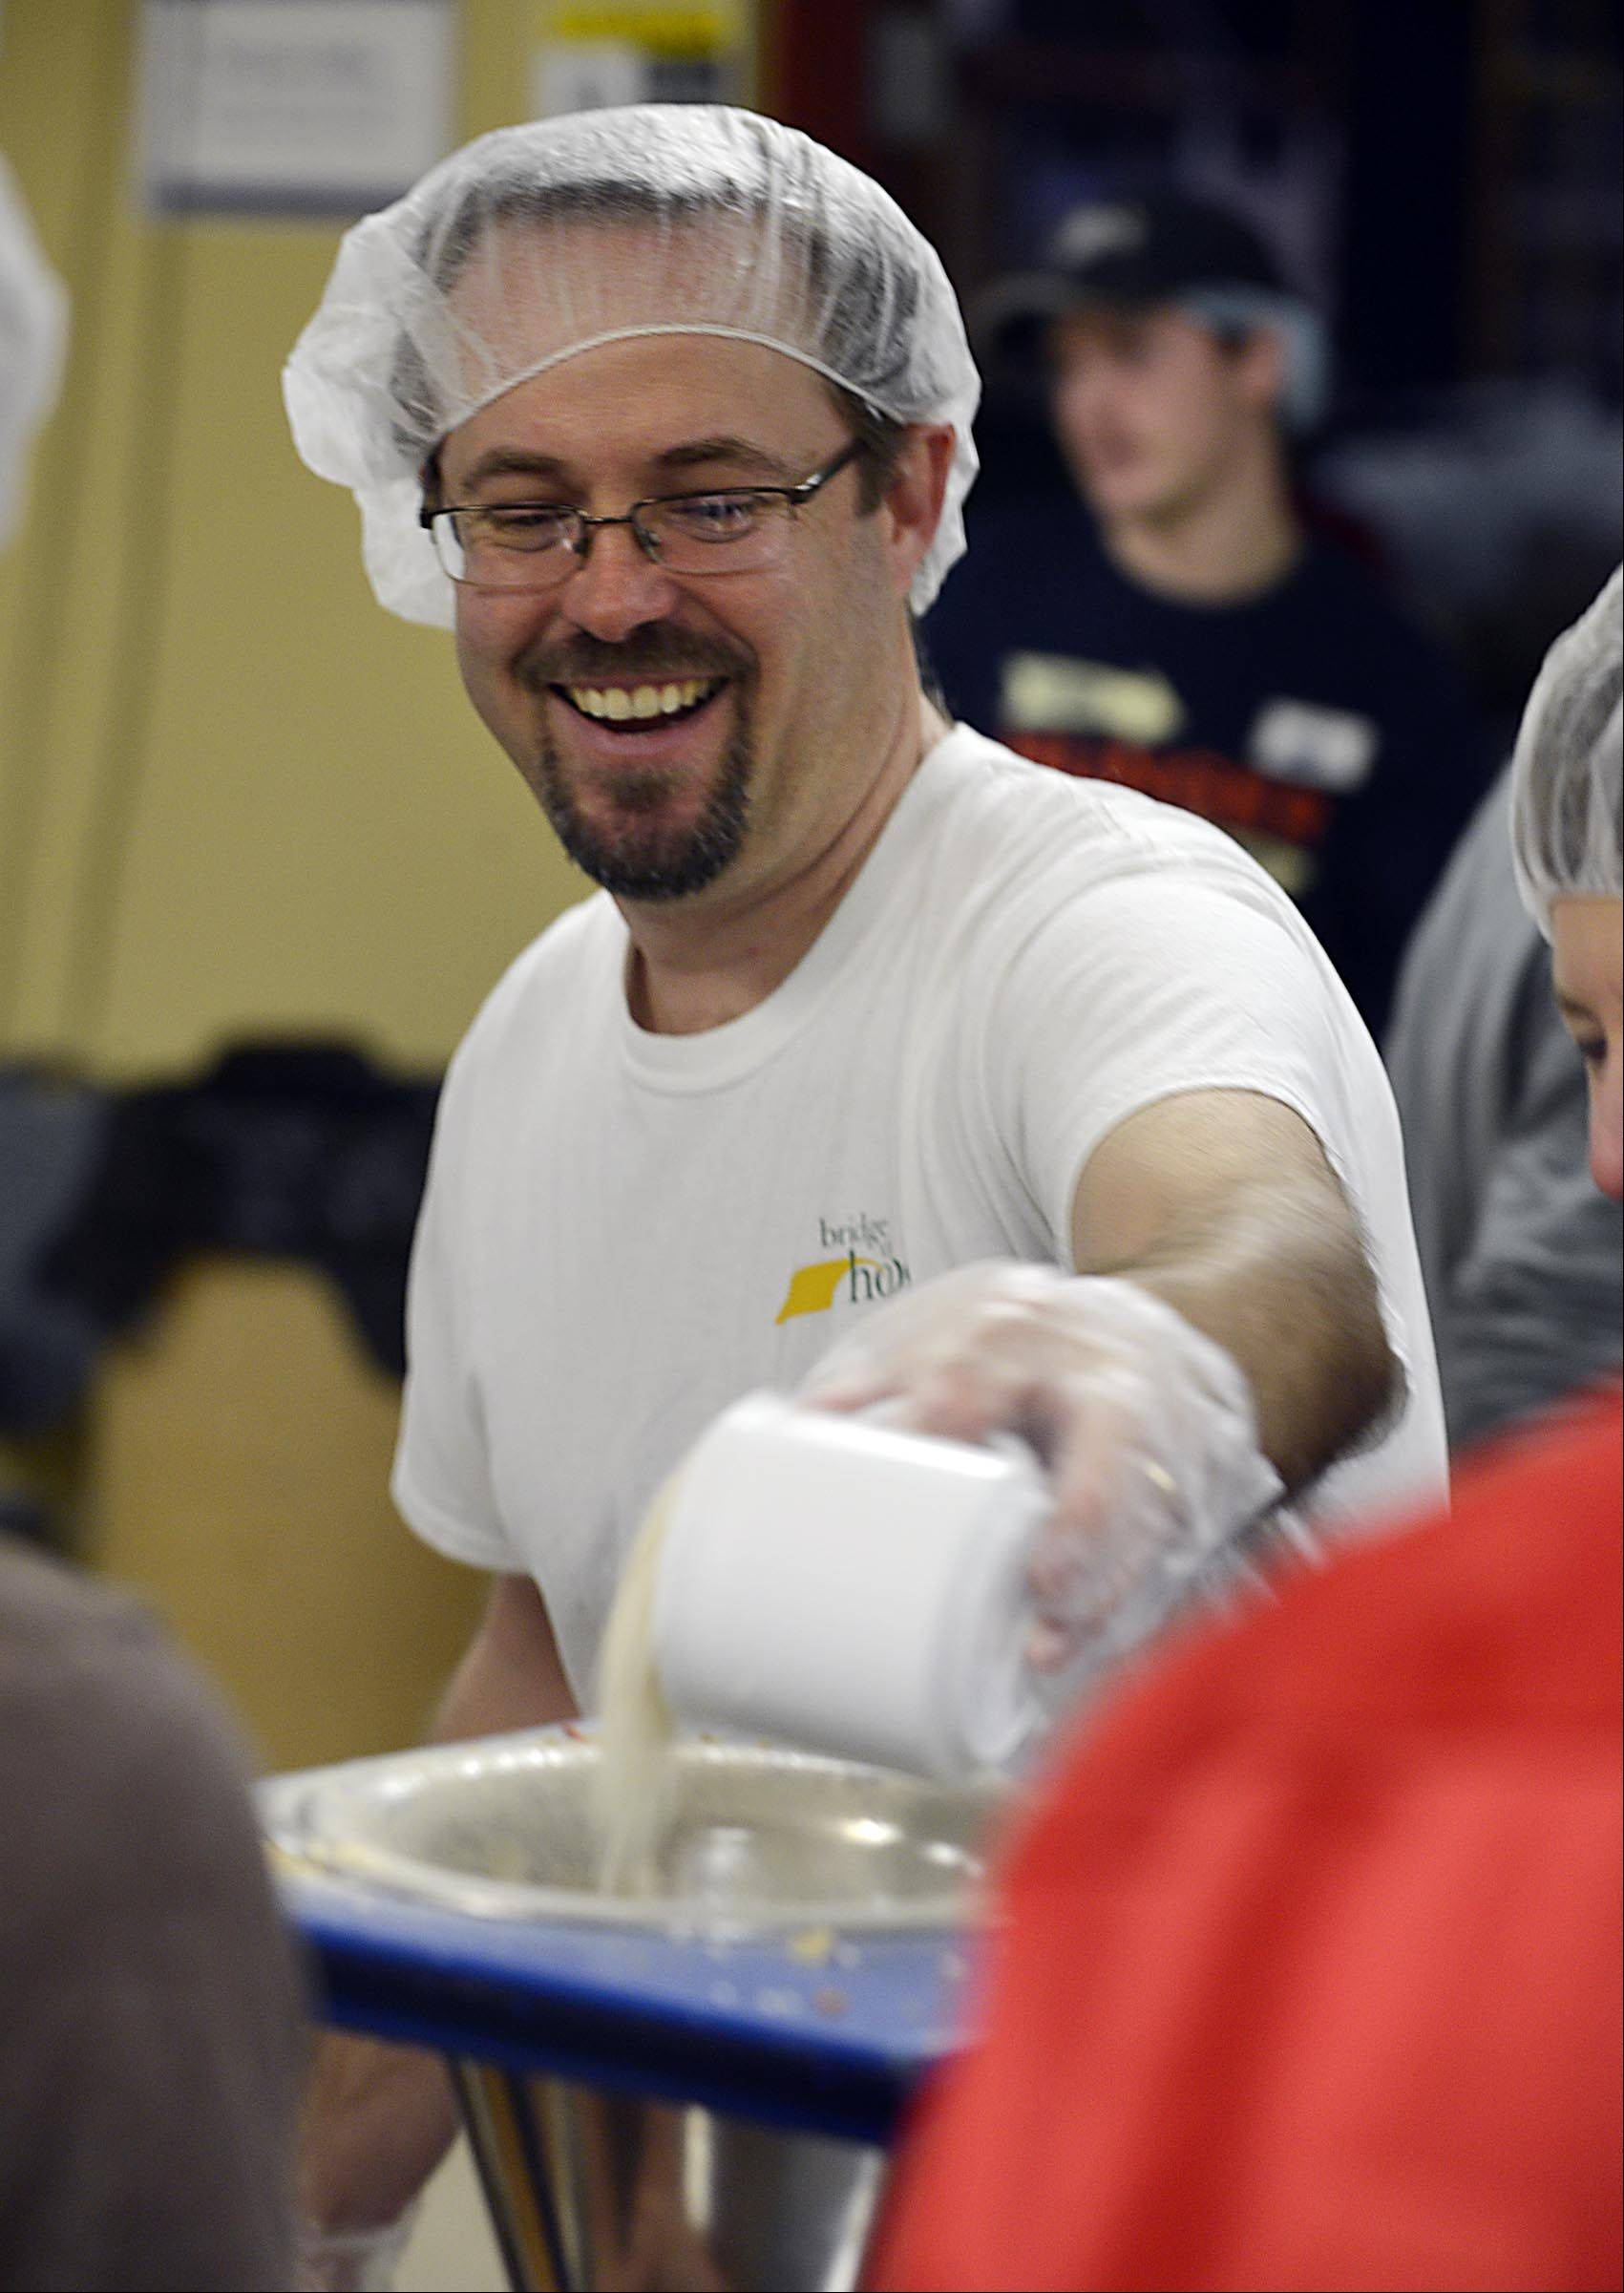 Matt Burgess, of Champaign, enjoys the day with his Geneva family, as he measures rice and helps assemble food packets for hungry kids in Haiti and Cambodia.